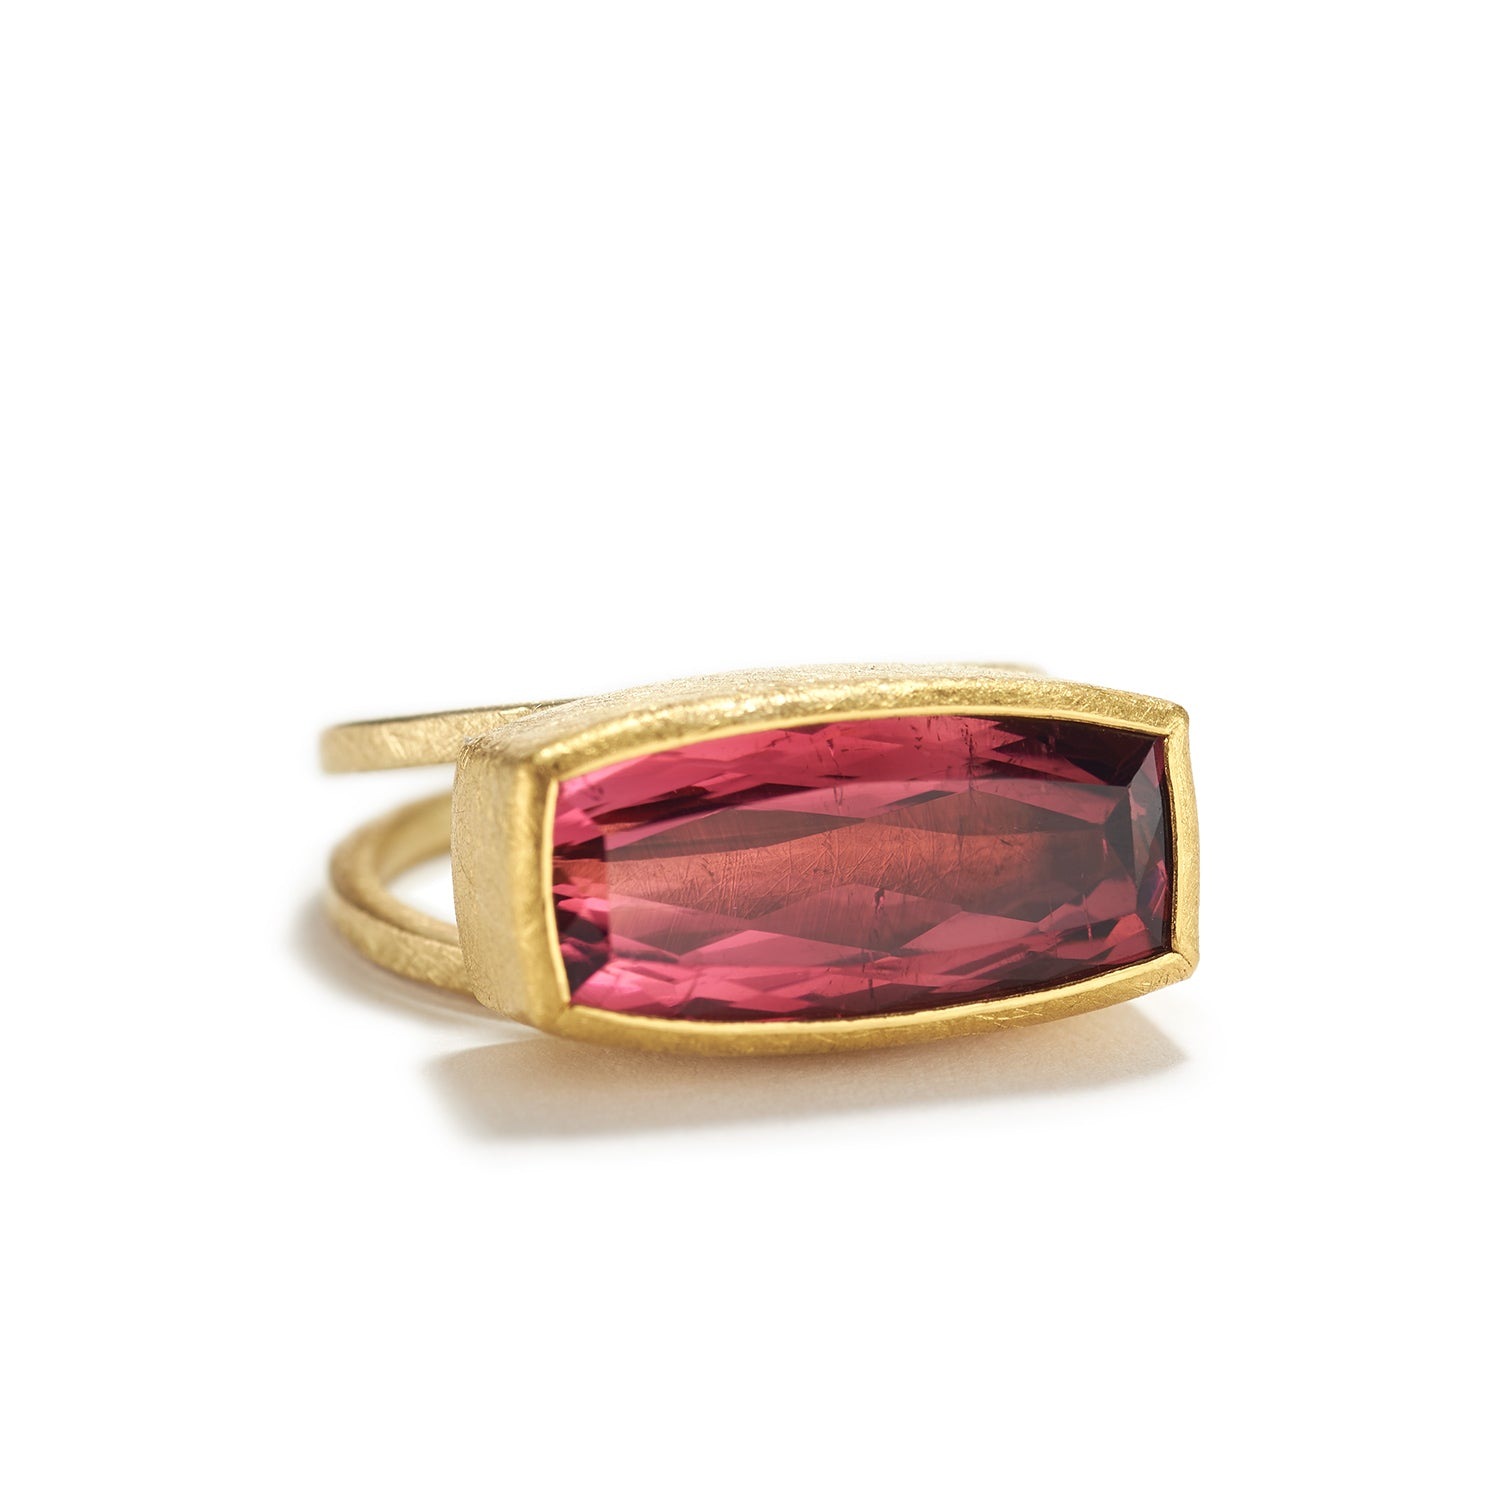 Faceted Red/Pink Tourmaline Ring